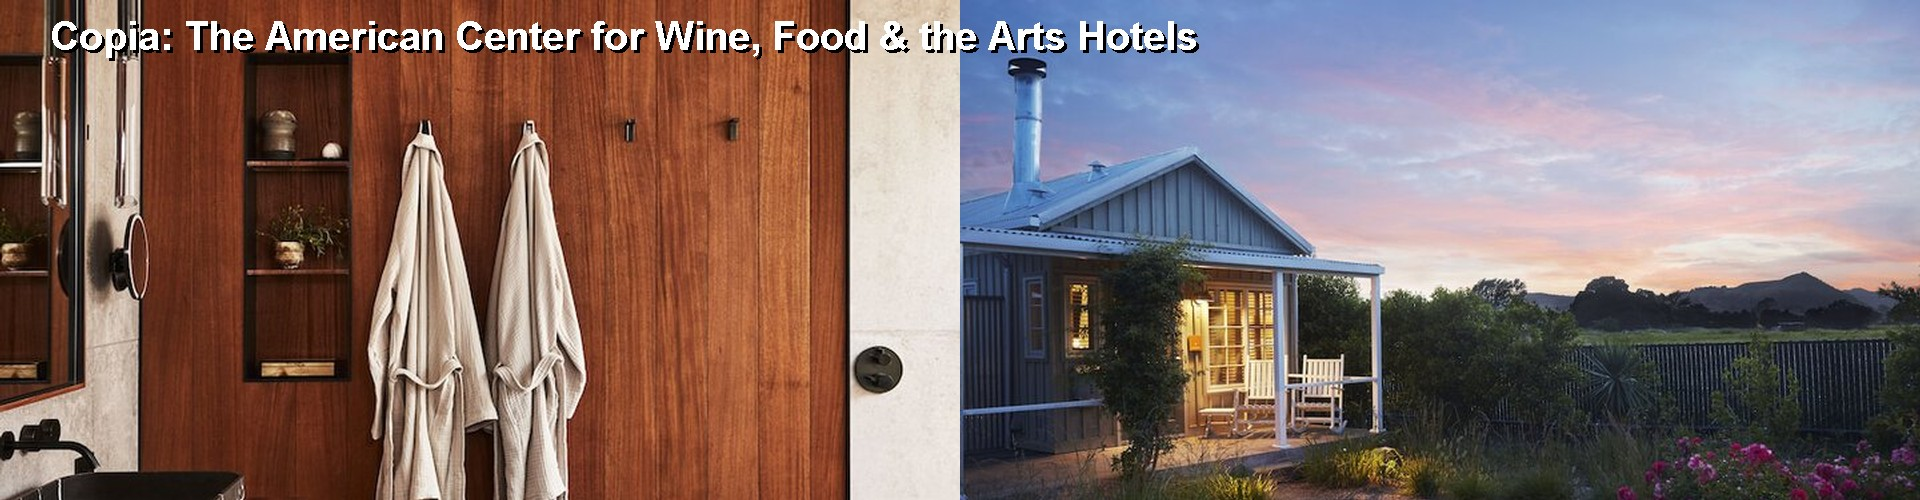 5 Best Hotels near Copia: The American Center for Wine, Food & the Arts